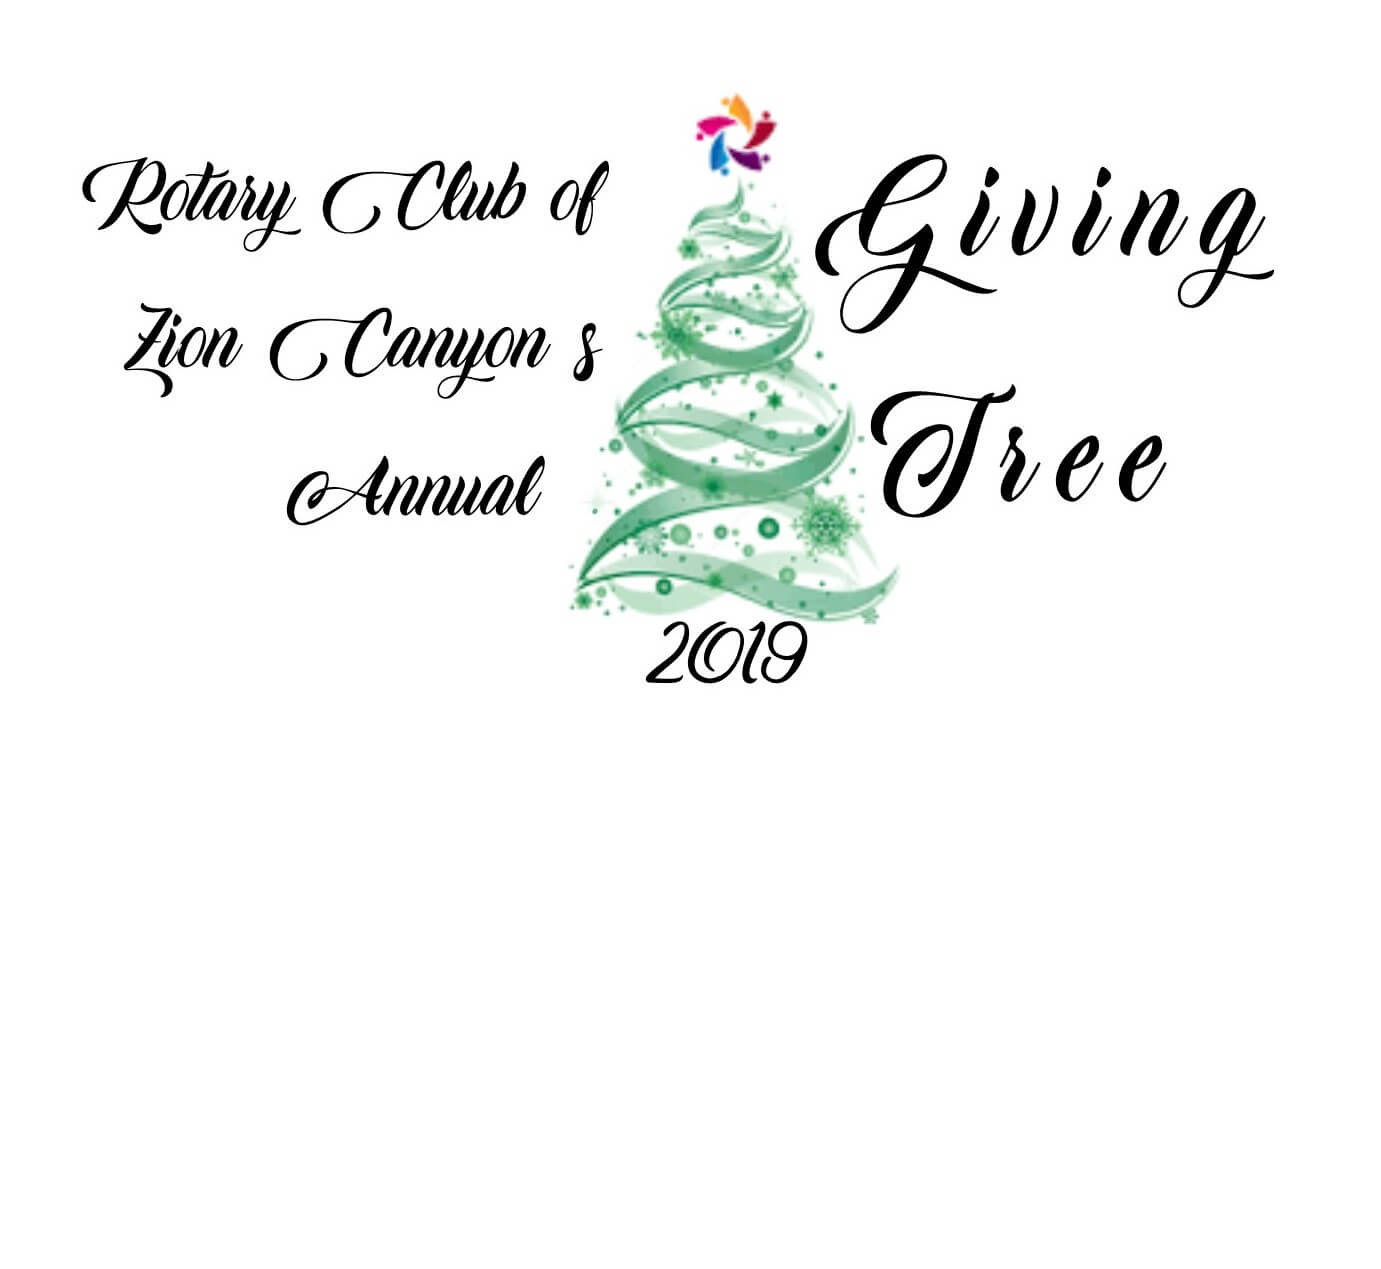 Poster: Rotary Club of Zion Canyon's Annual Giving Tree 2019